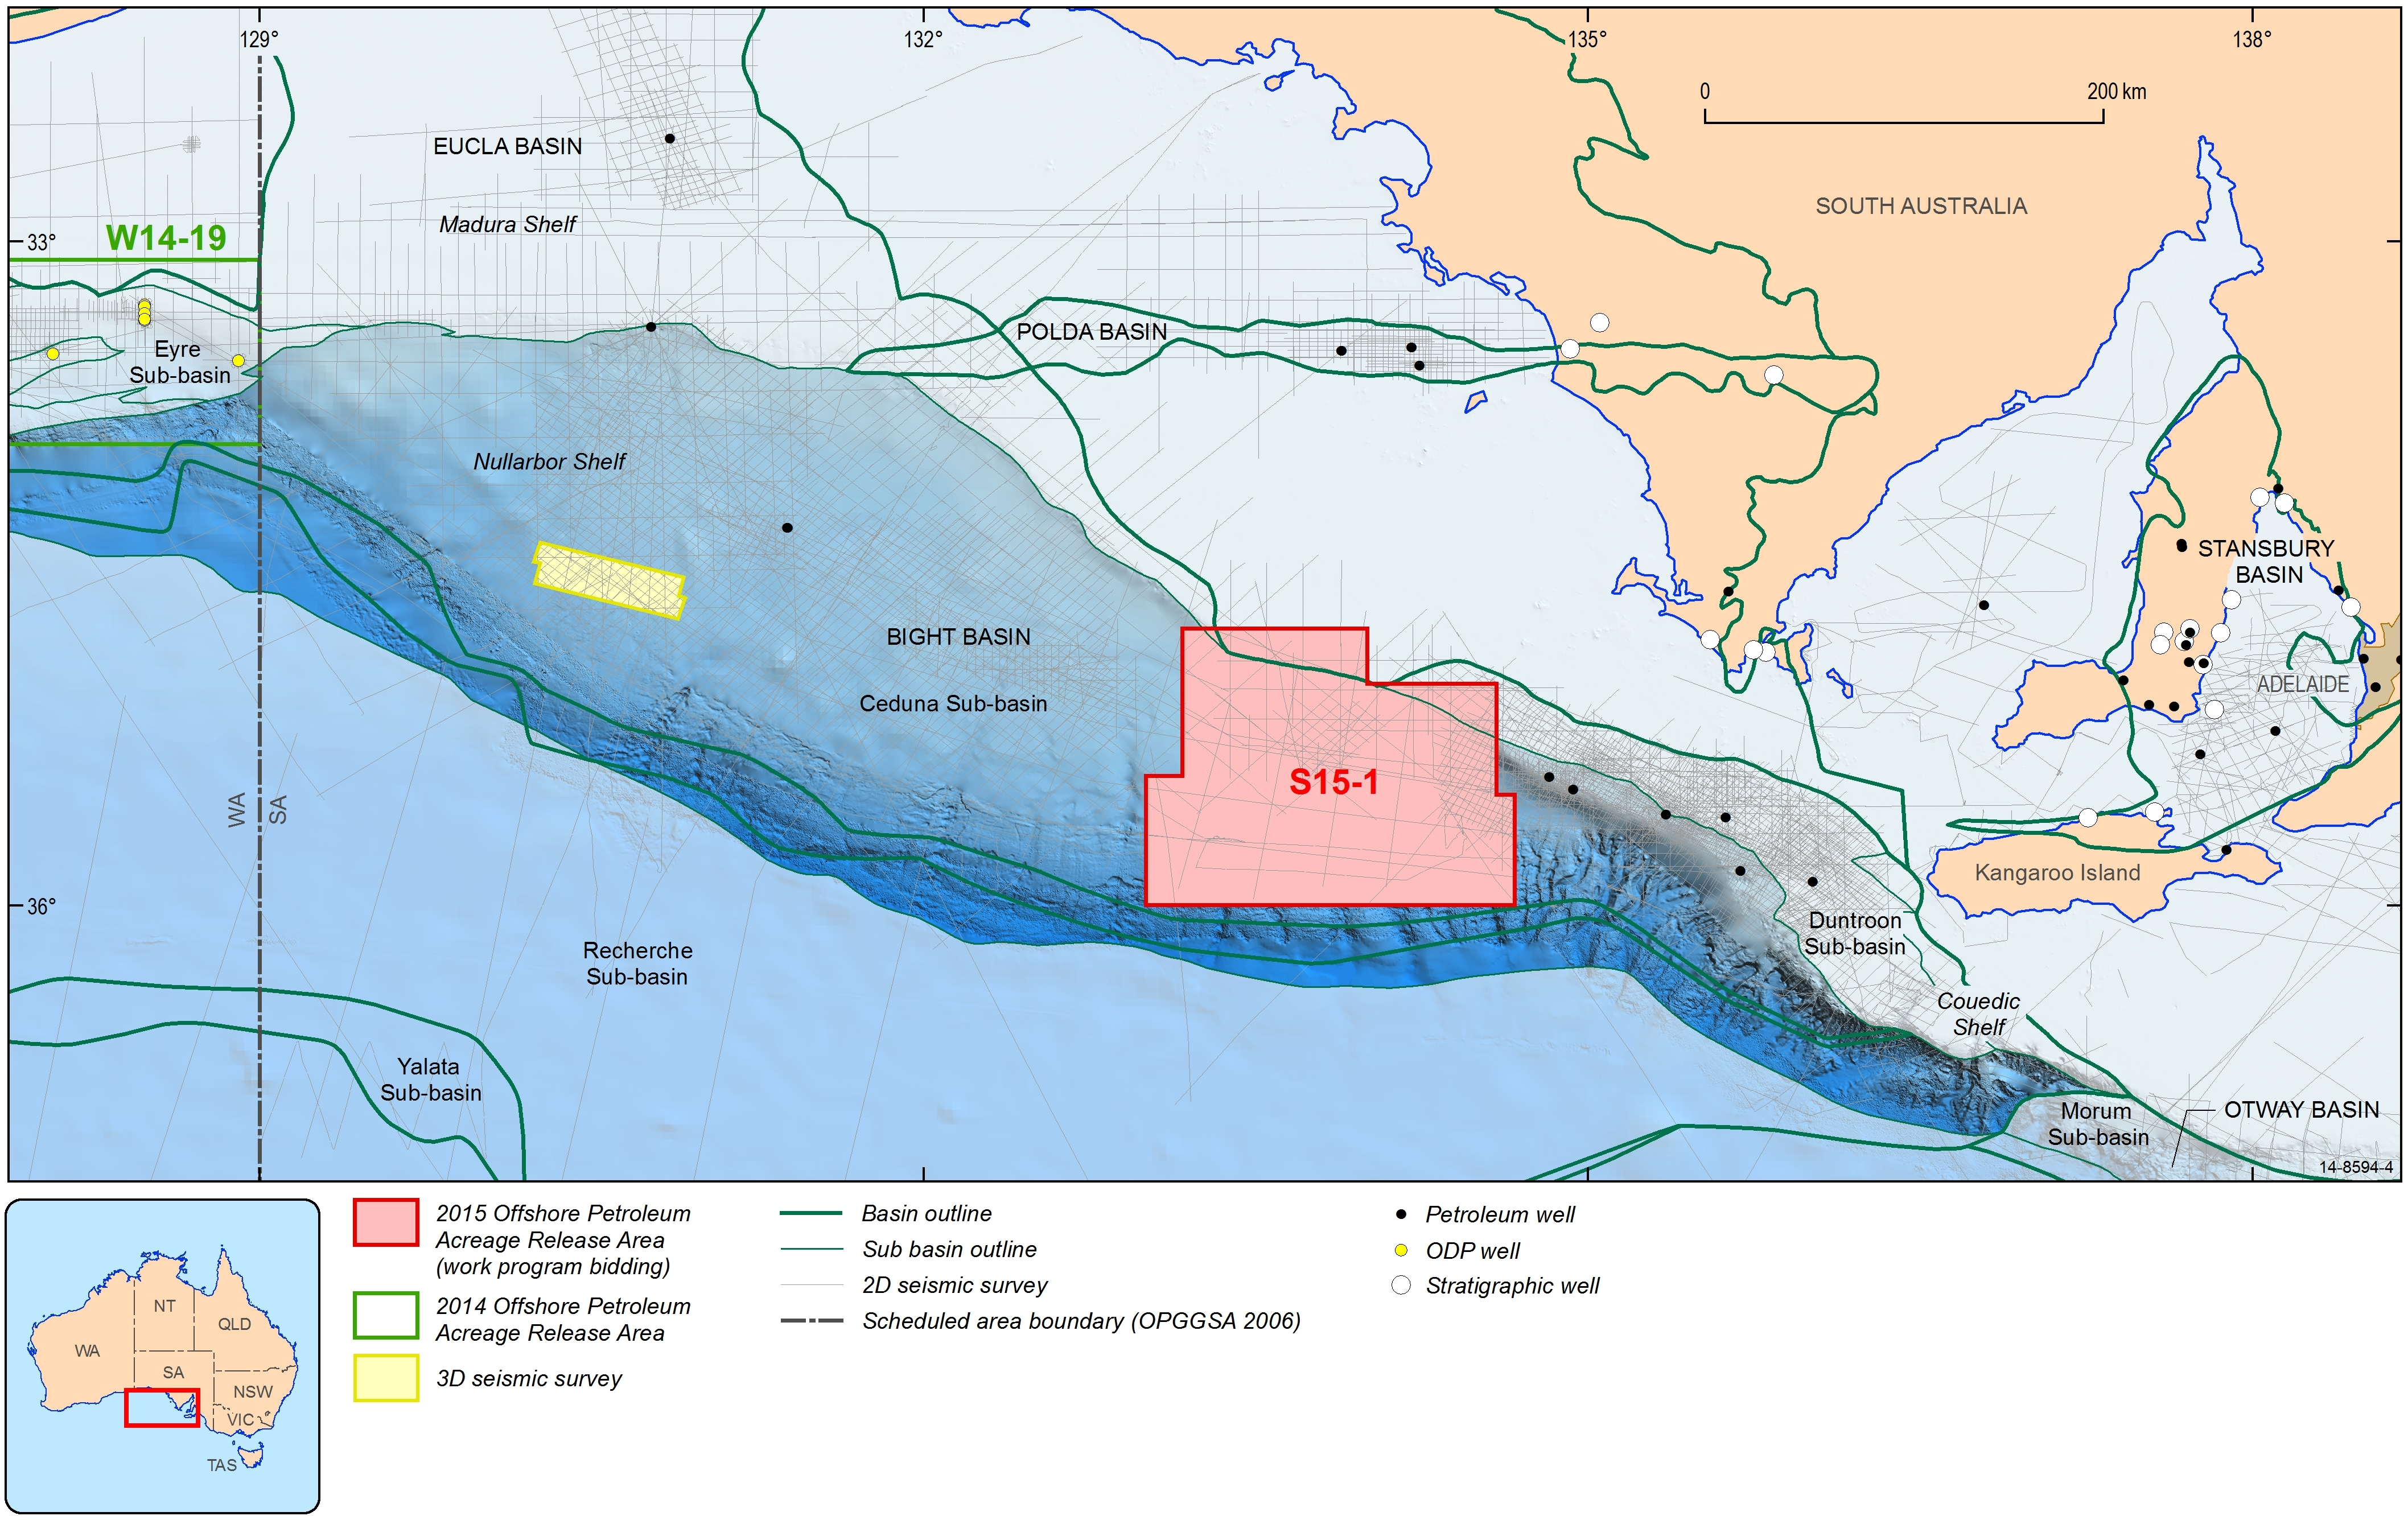 Fig 2. Pre-2011 seismic coverage and wells drilled in the Bight Basin